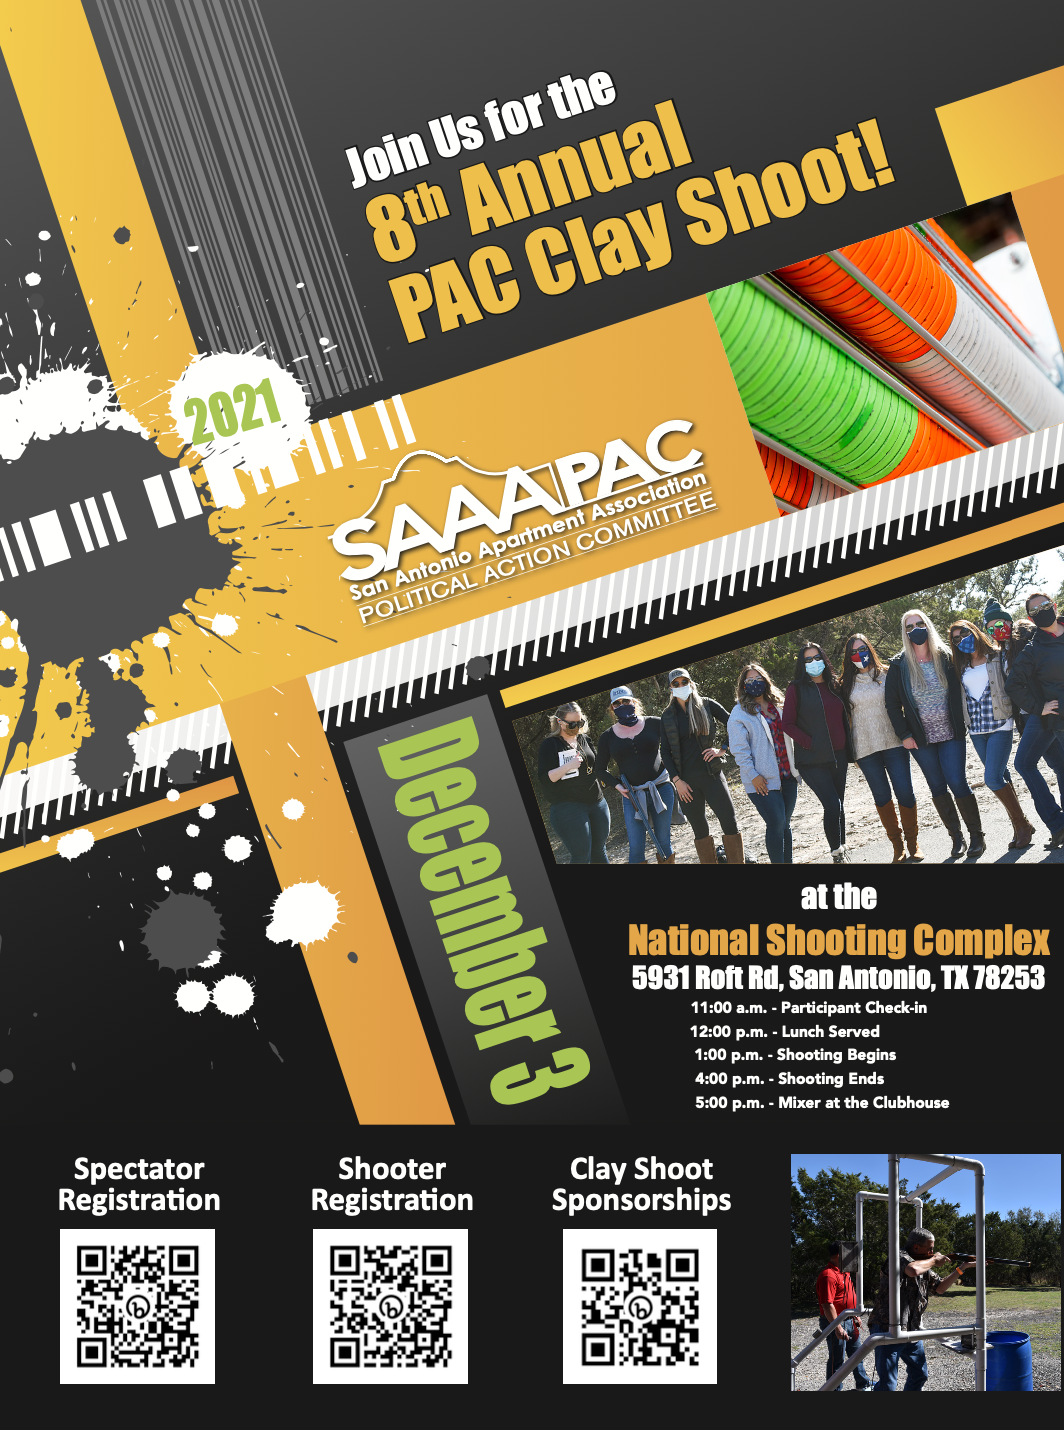 PAC Clay Shoot flyer